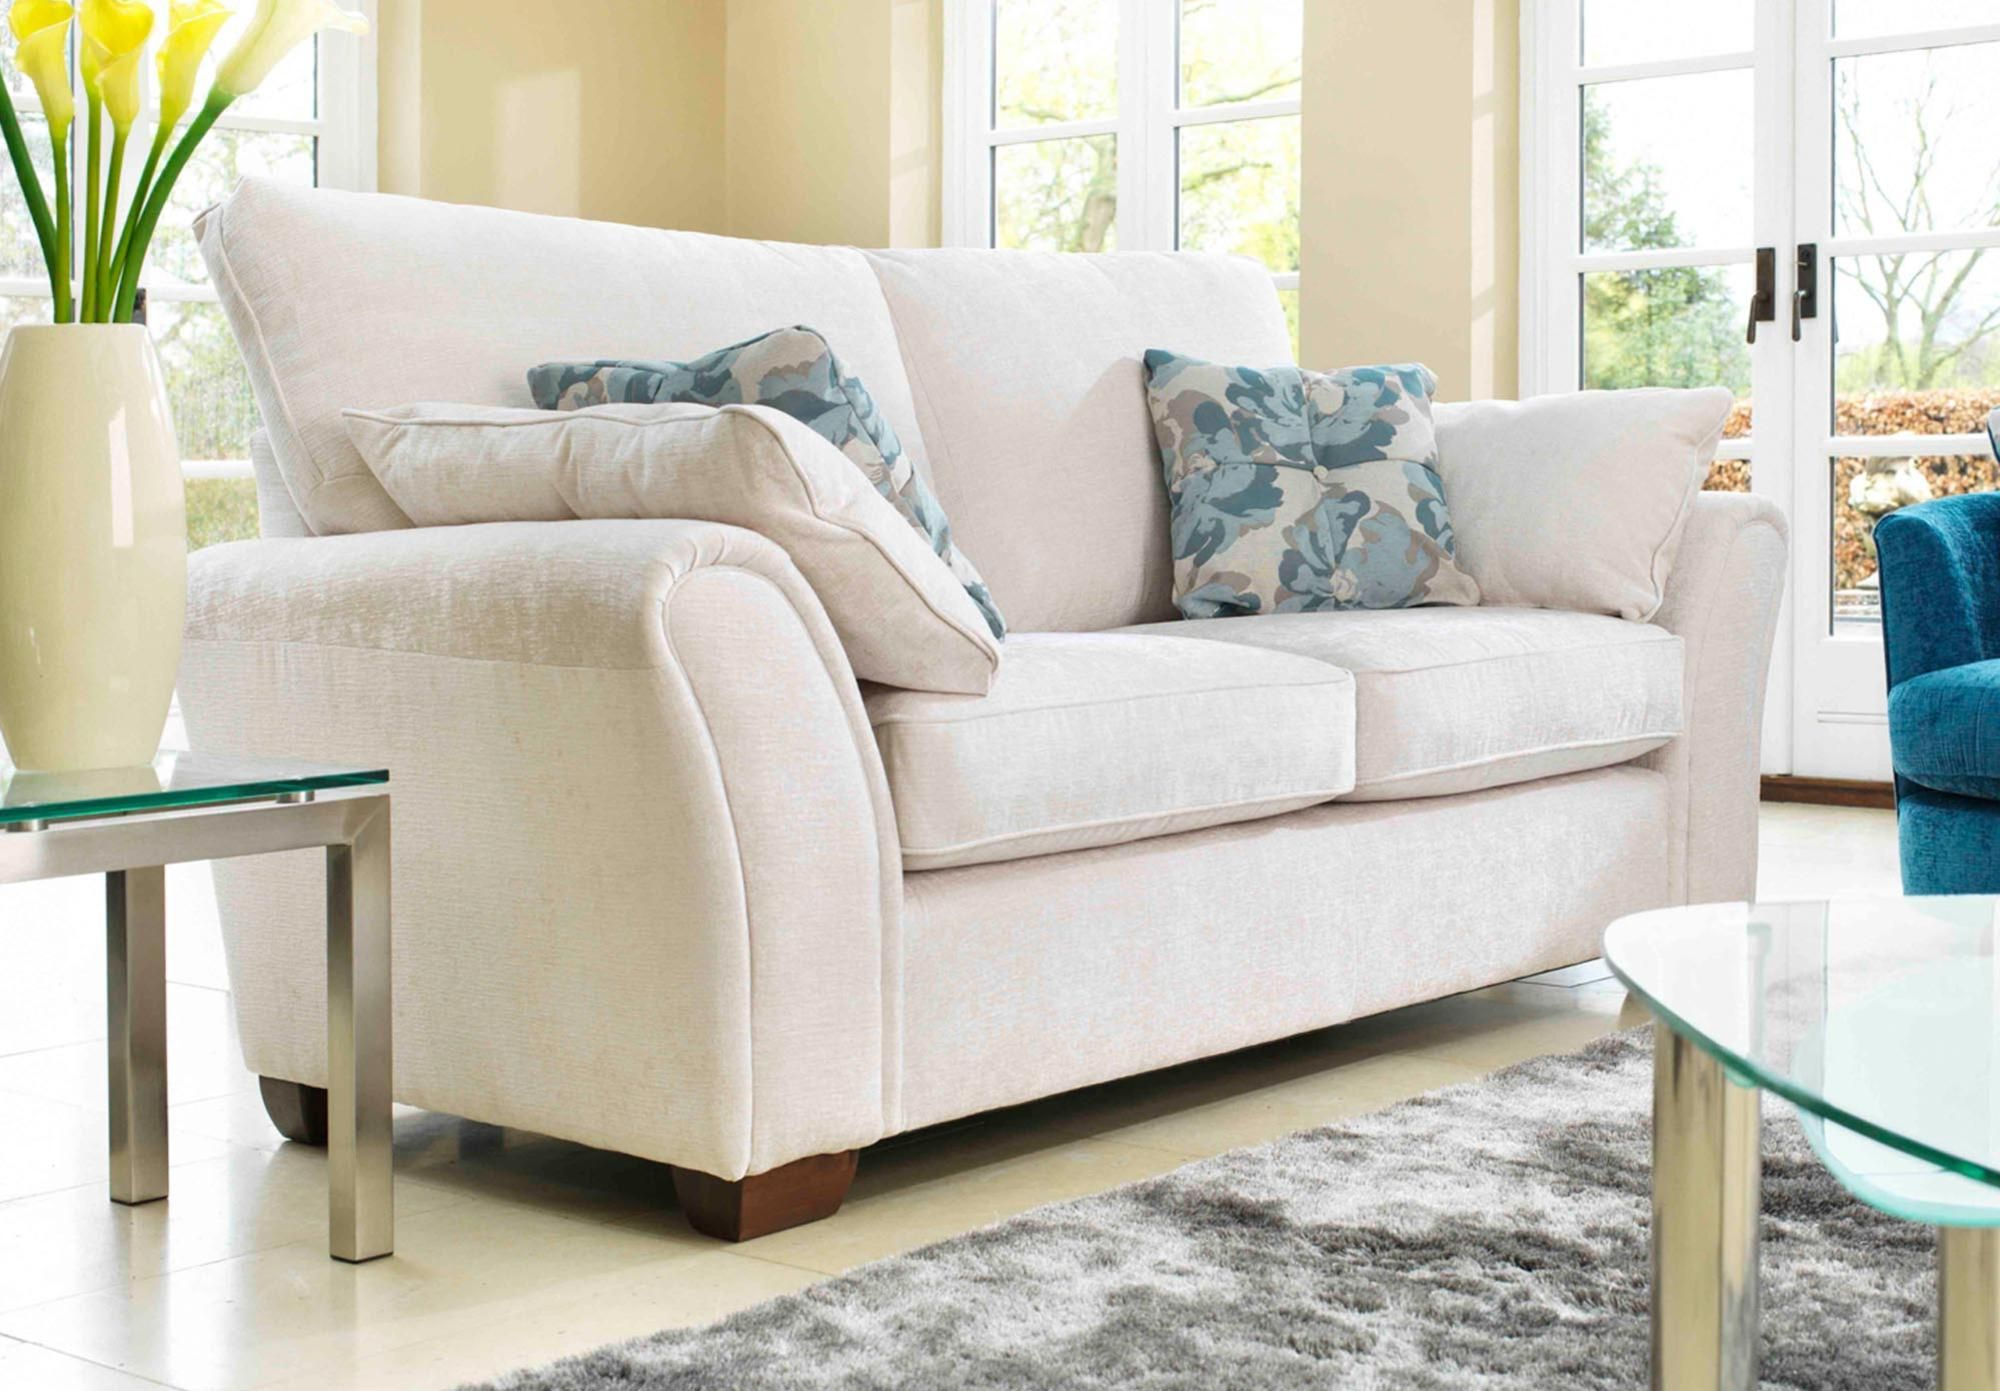 4 Seater Pillow Back Sectional Sofa Furniture